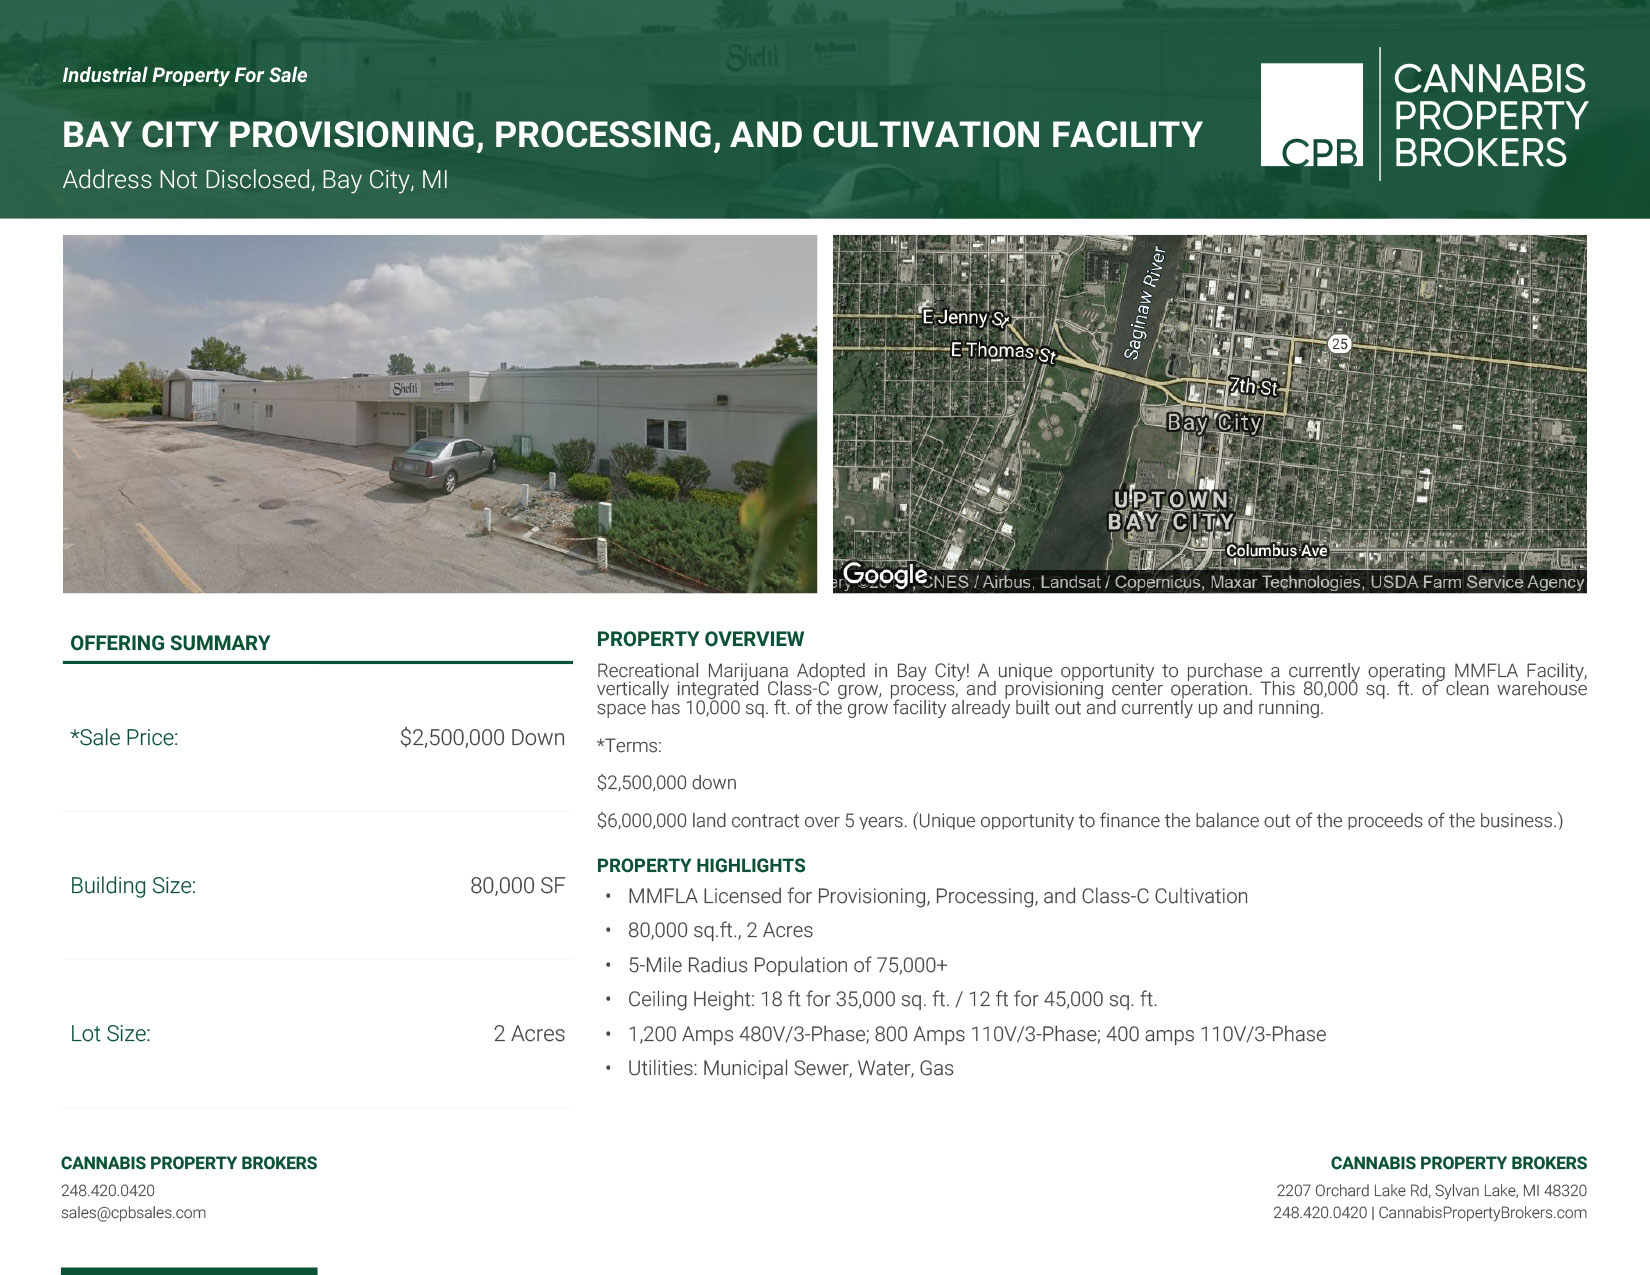 Bay City - PC. Processing. Grow - Marketing Material